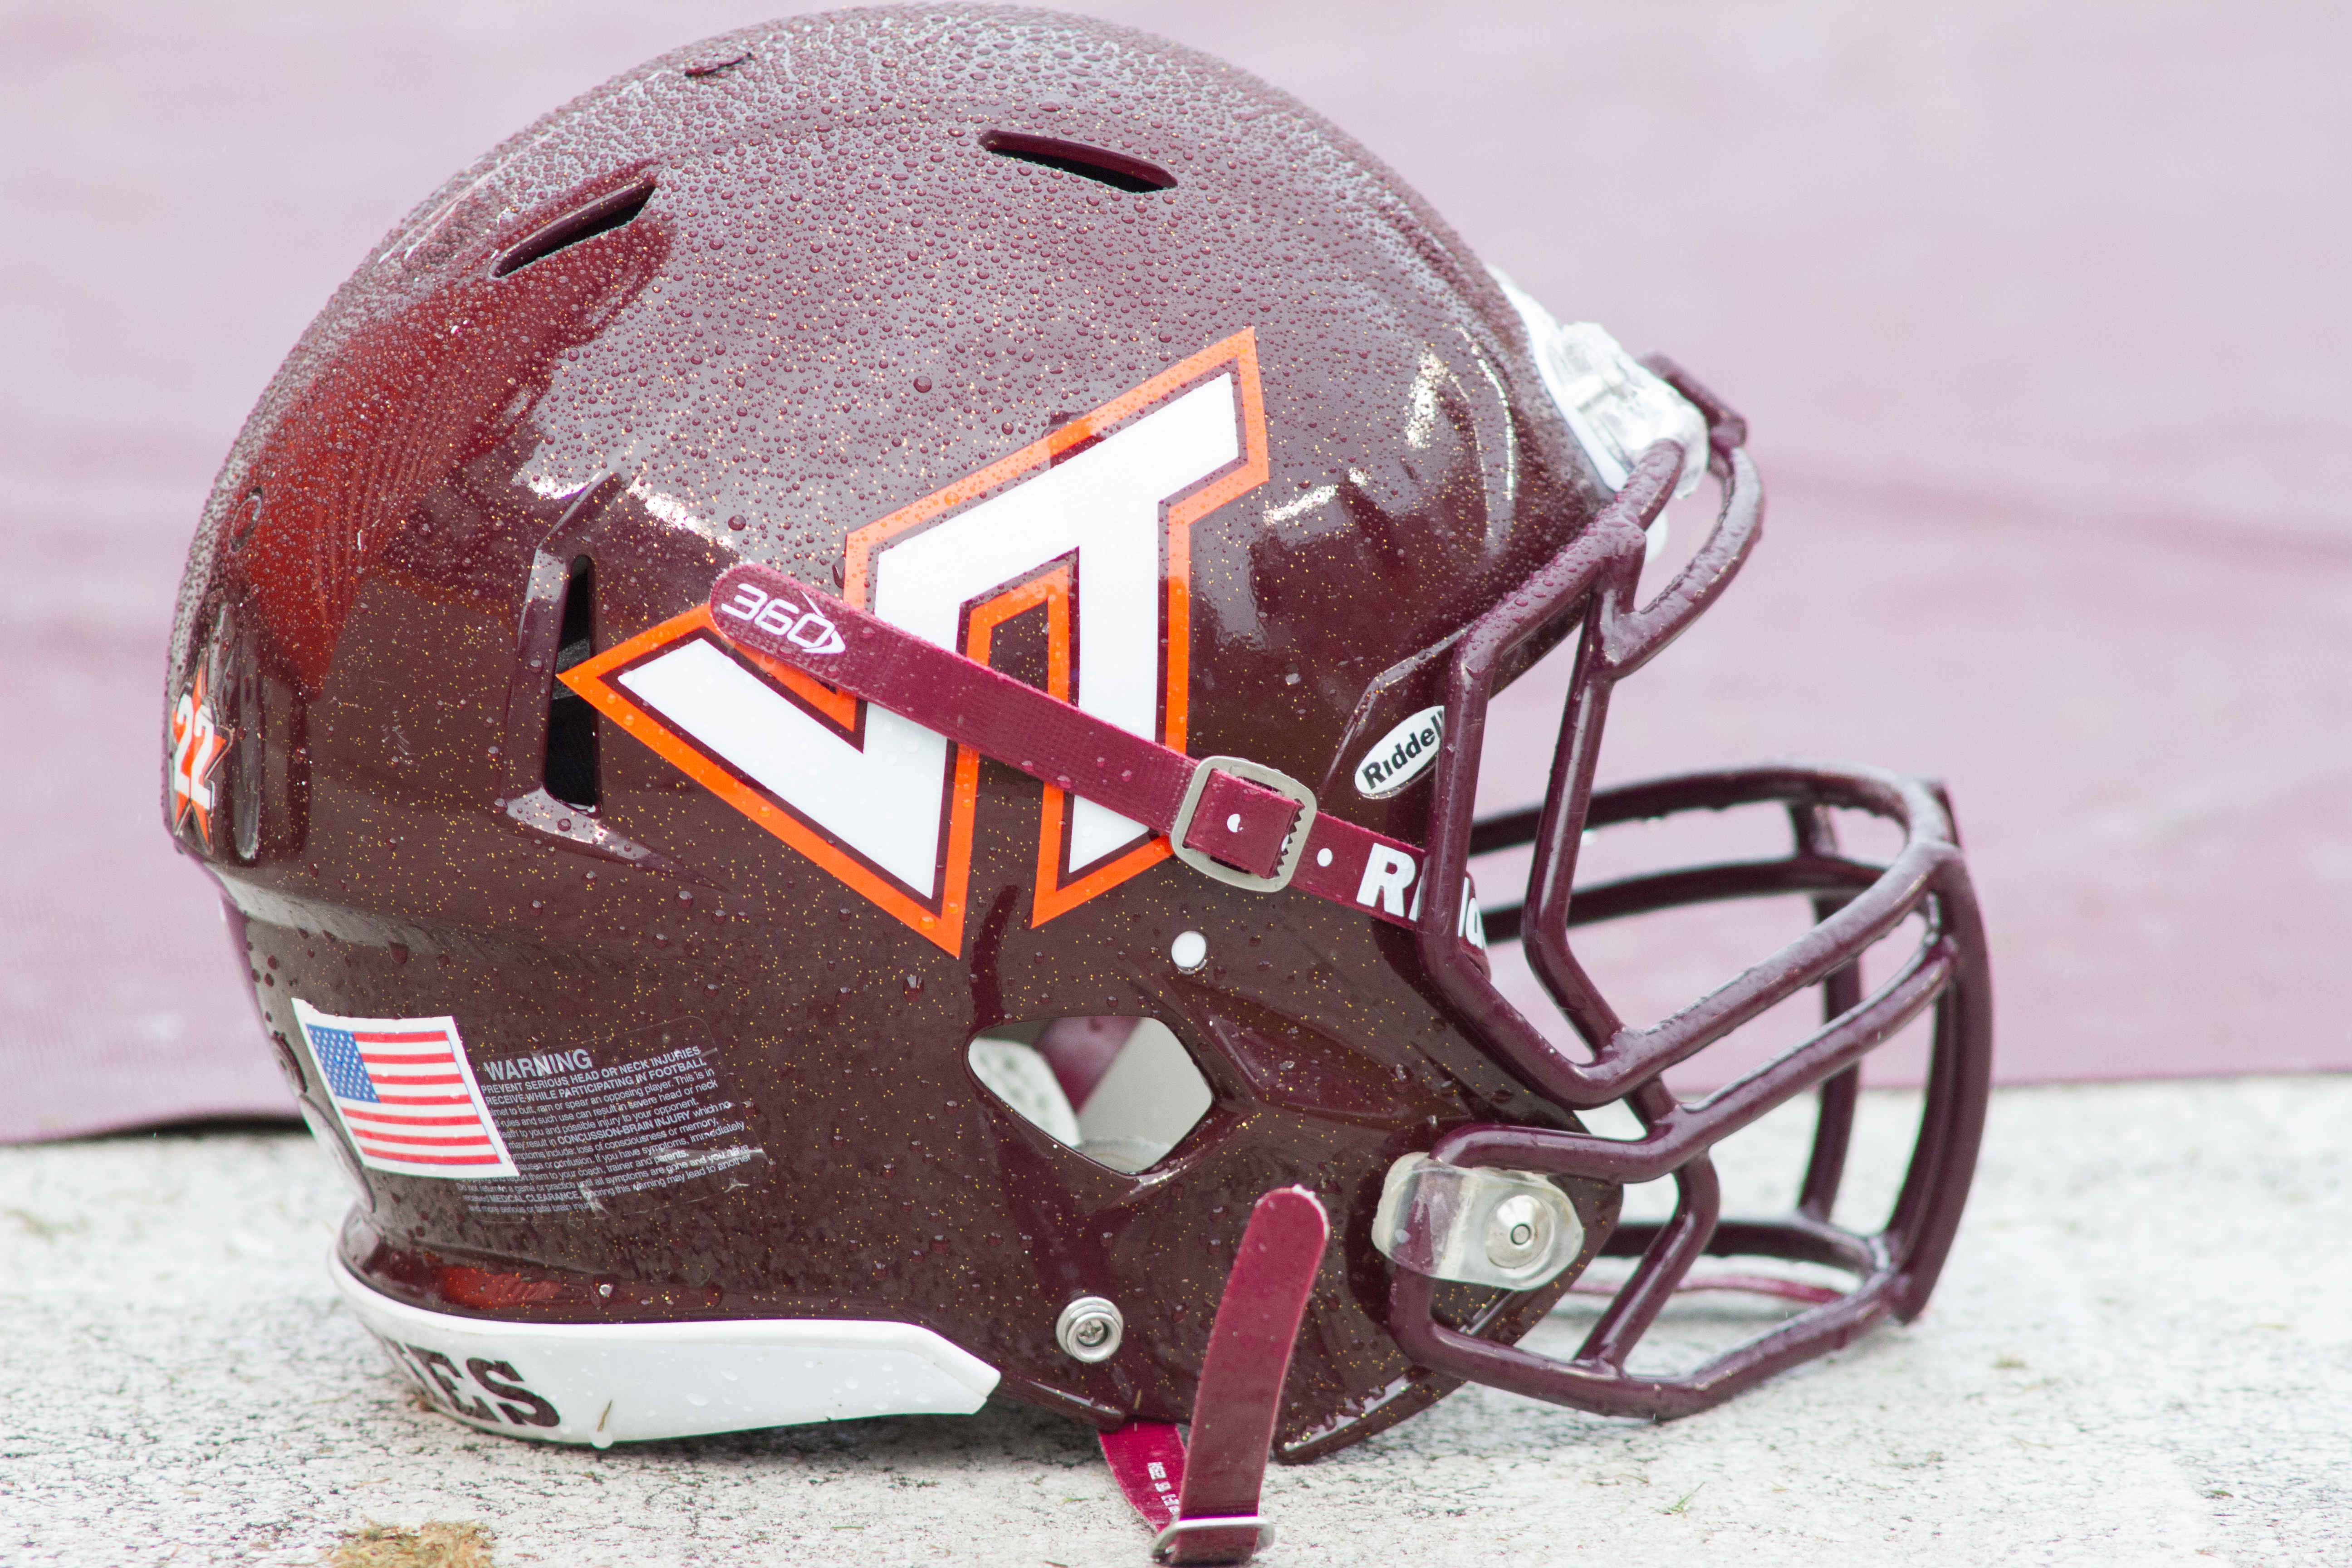 Virginia Tech football player Isimemen Etute arrested on second-degree murder charge